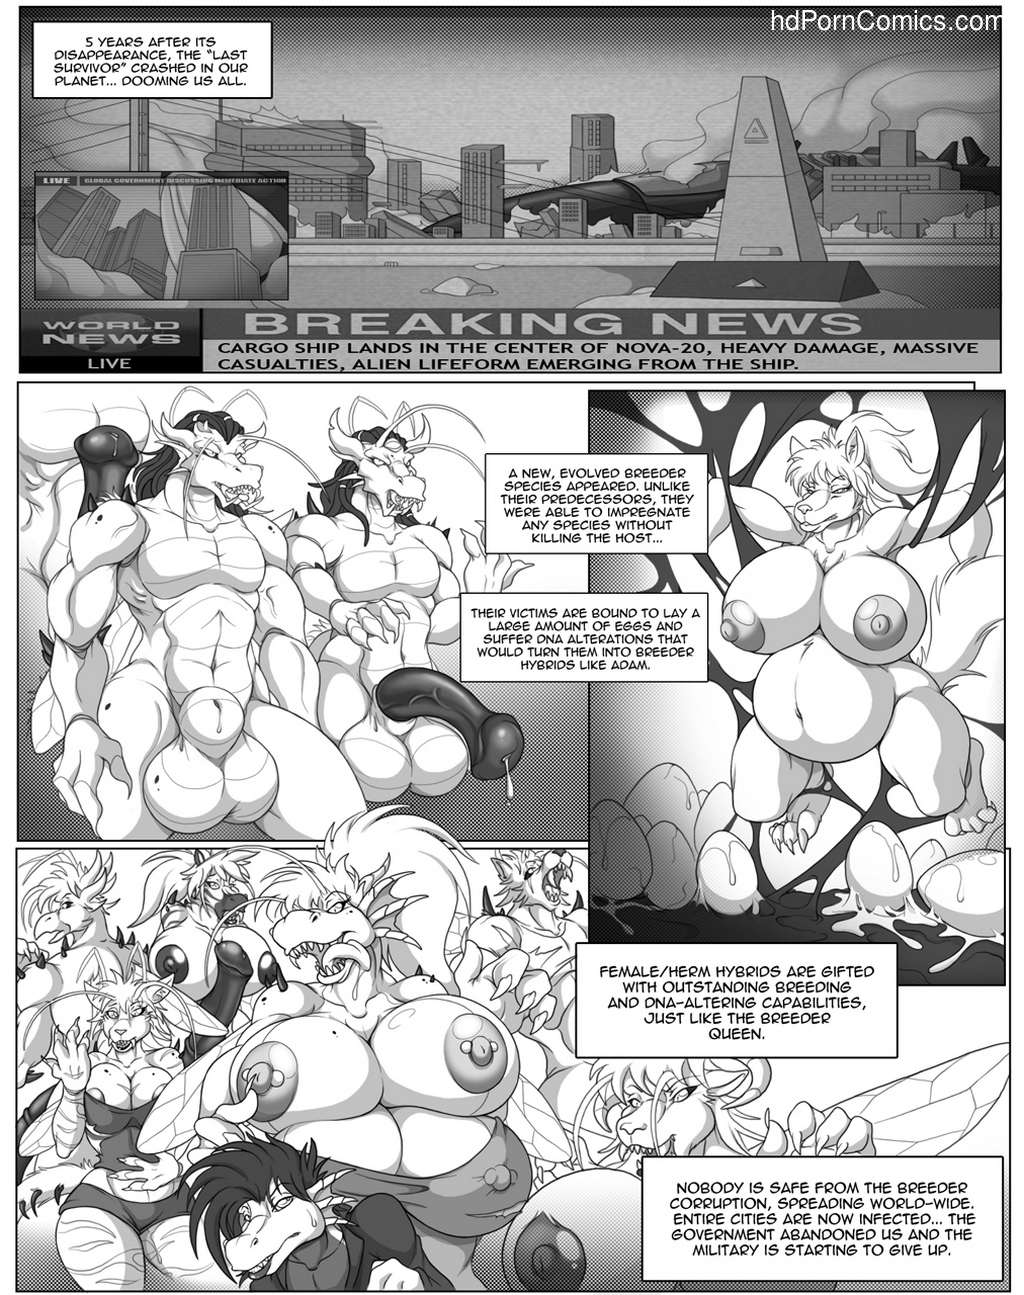 Last Survivor 2 24 free sex comic